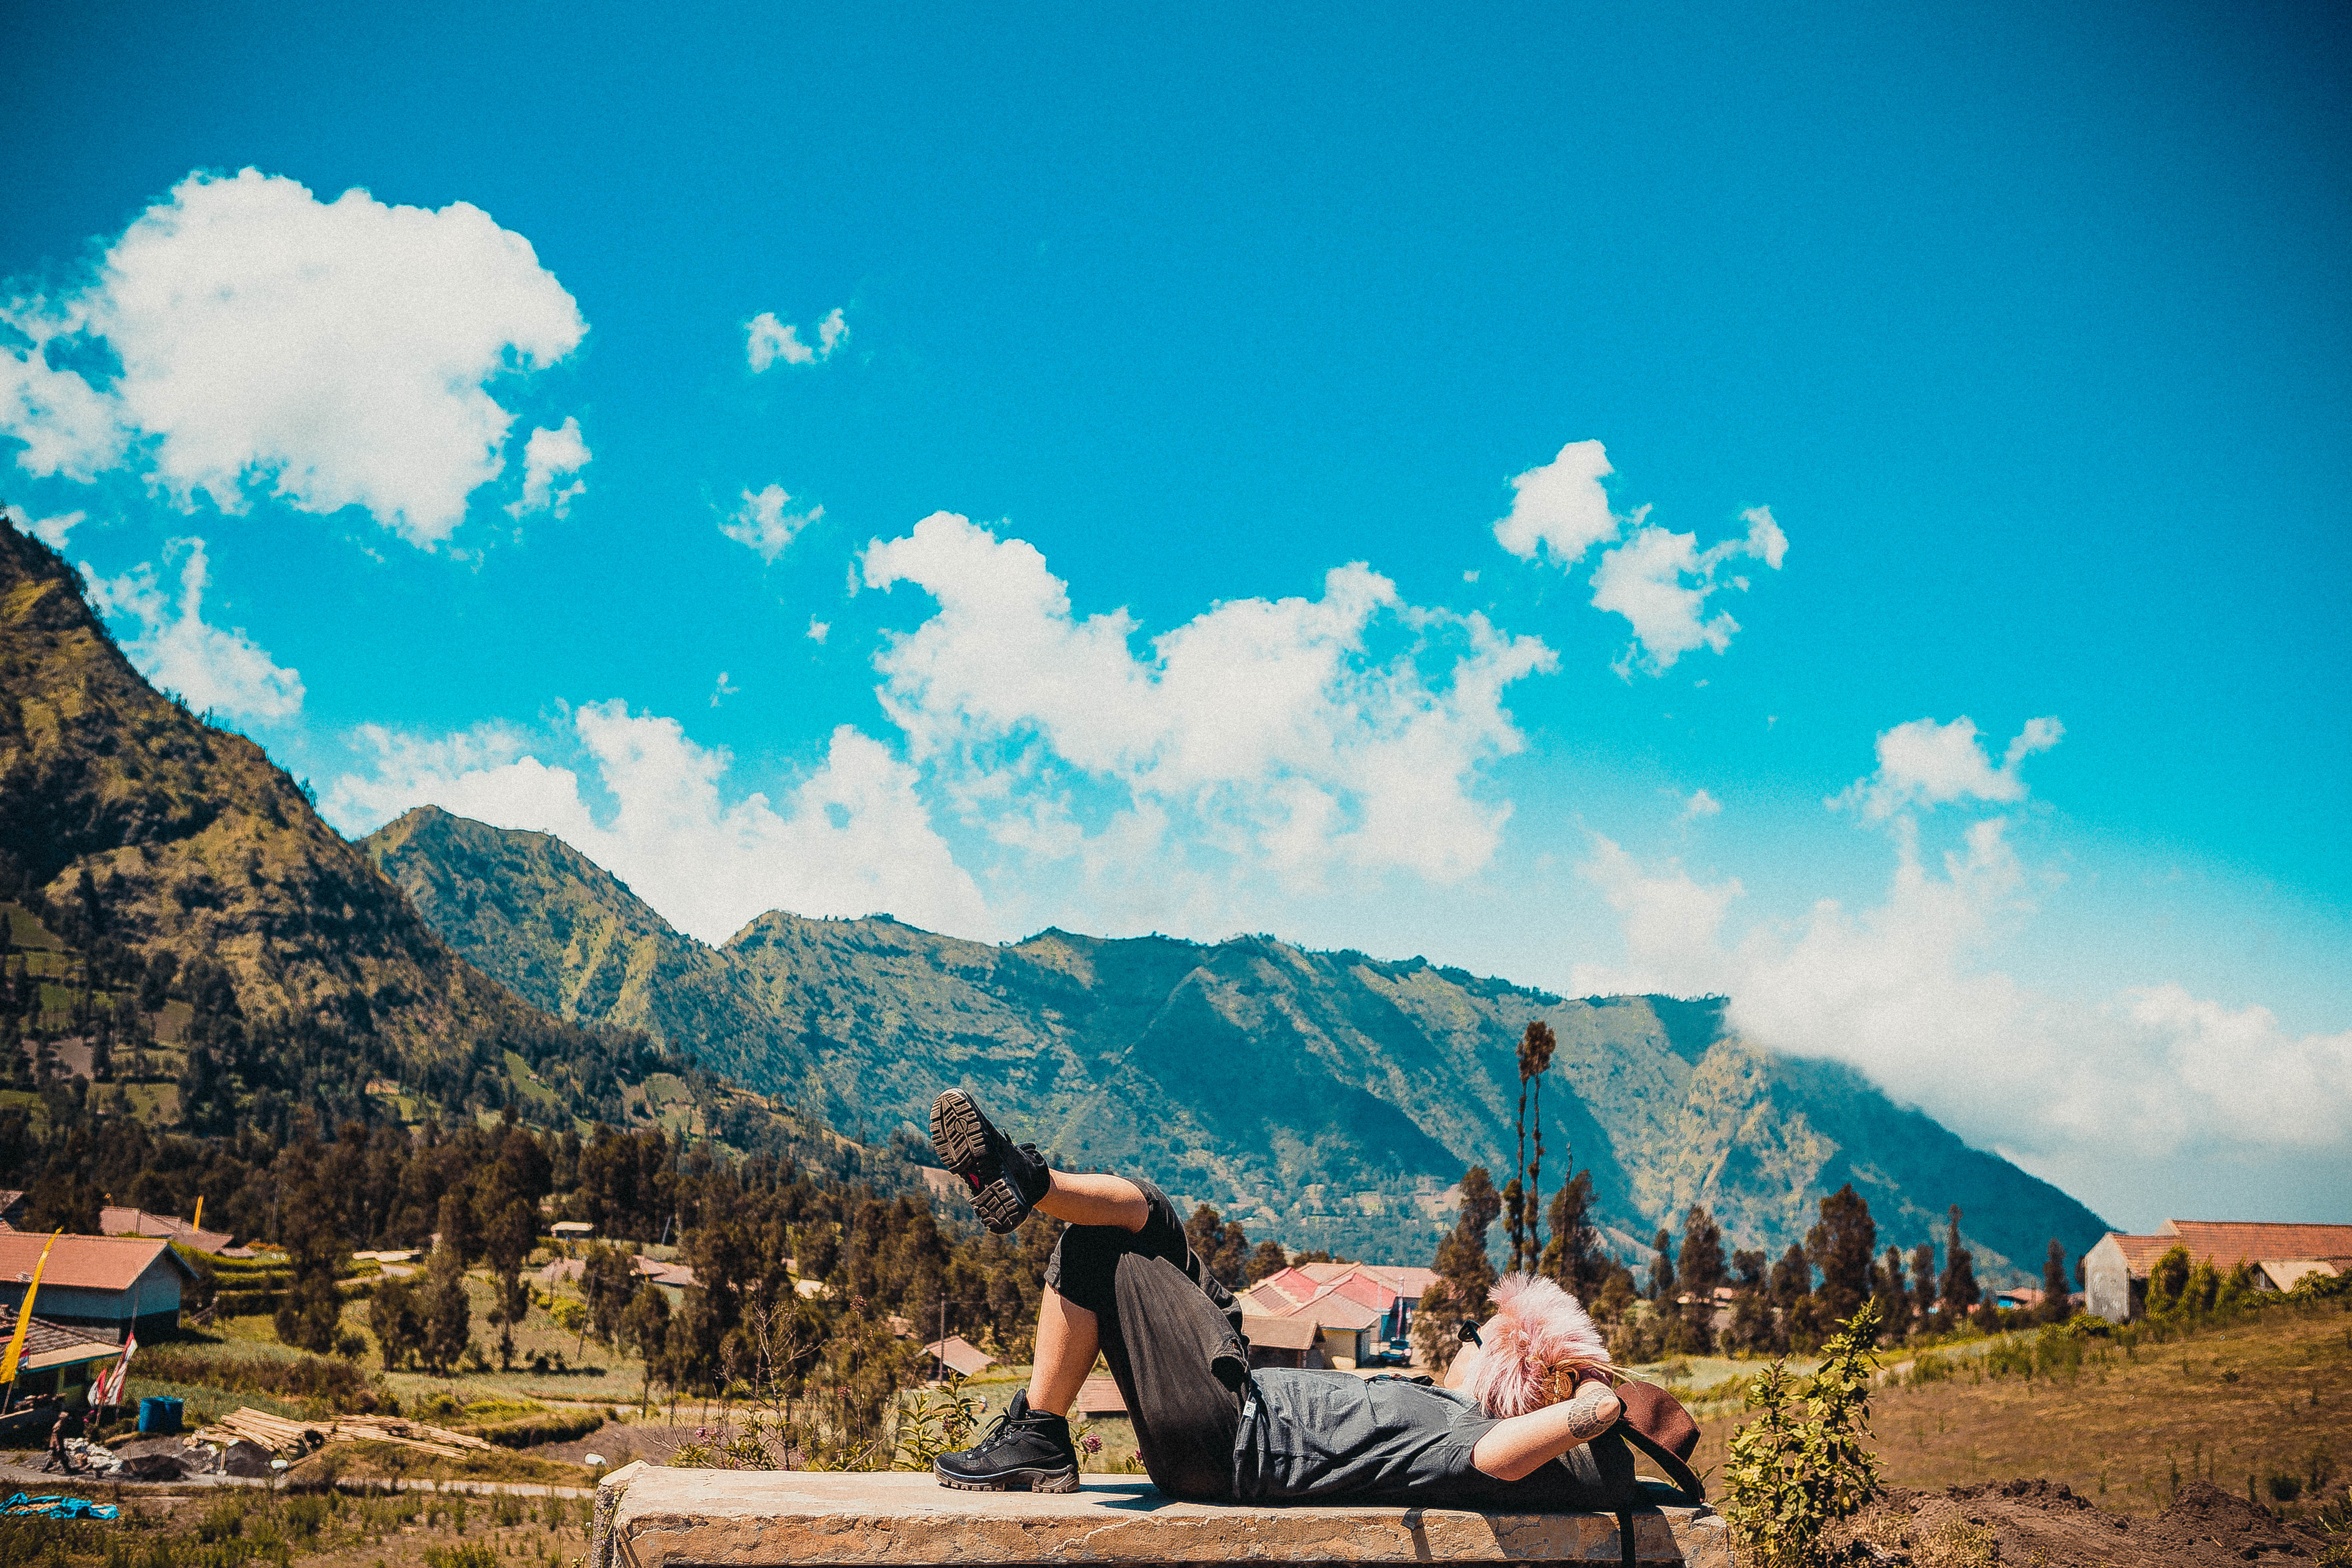 chilling next to the hike Mount Bromo mountains around greenery sunny day